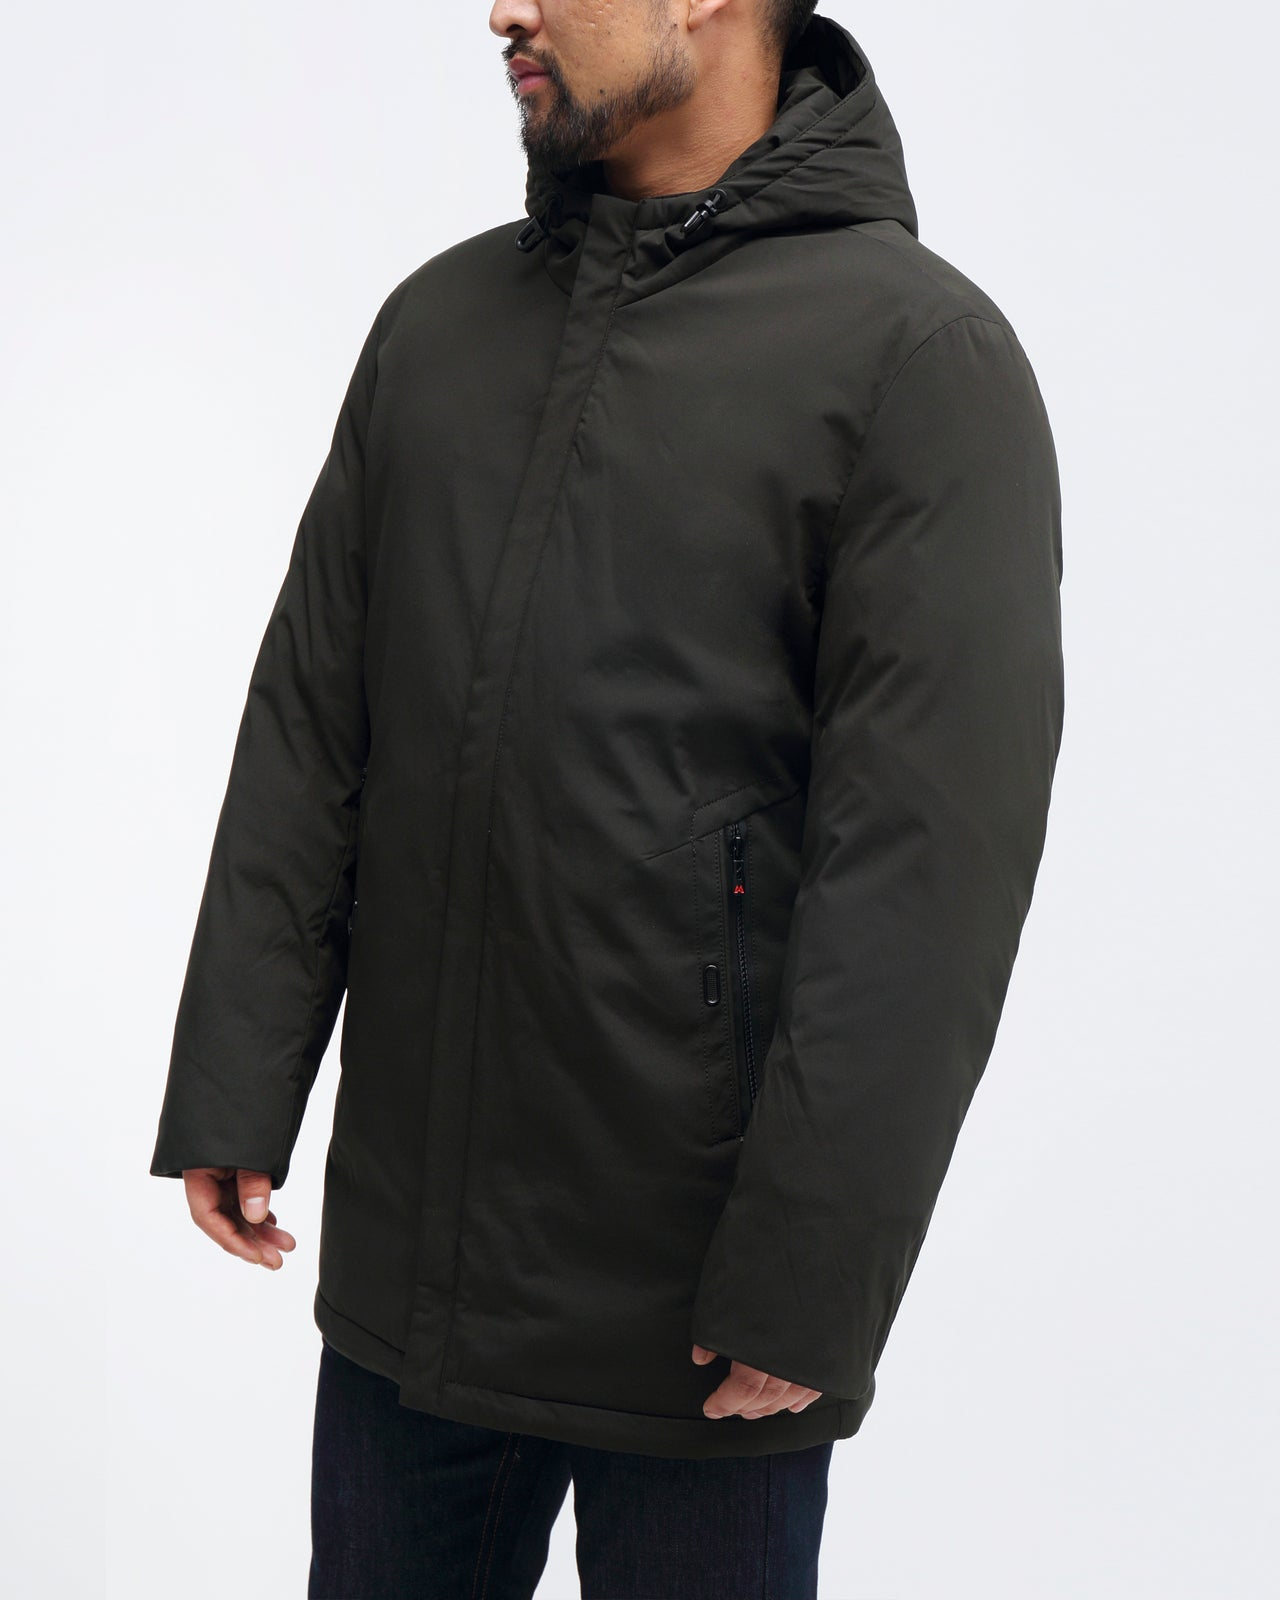 Chevron Parka - Color: Green